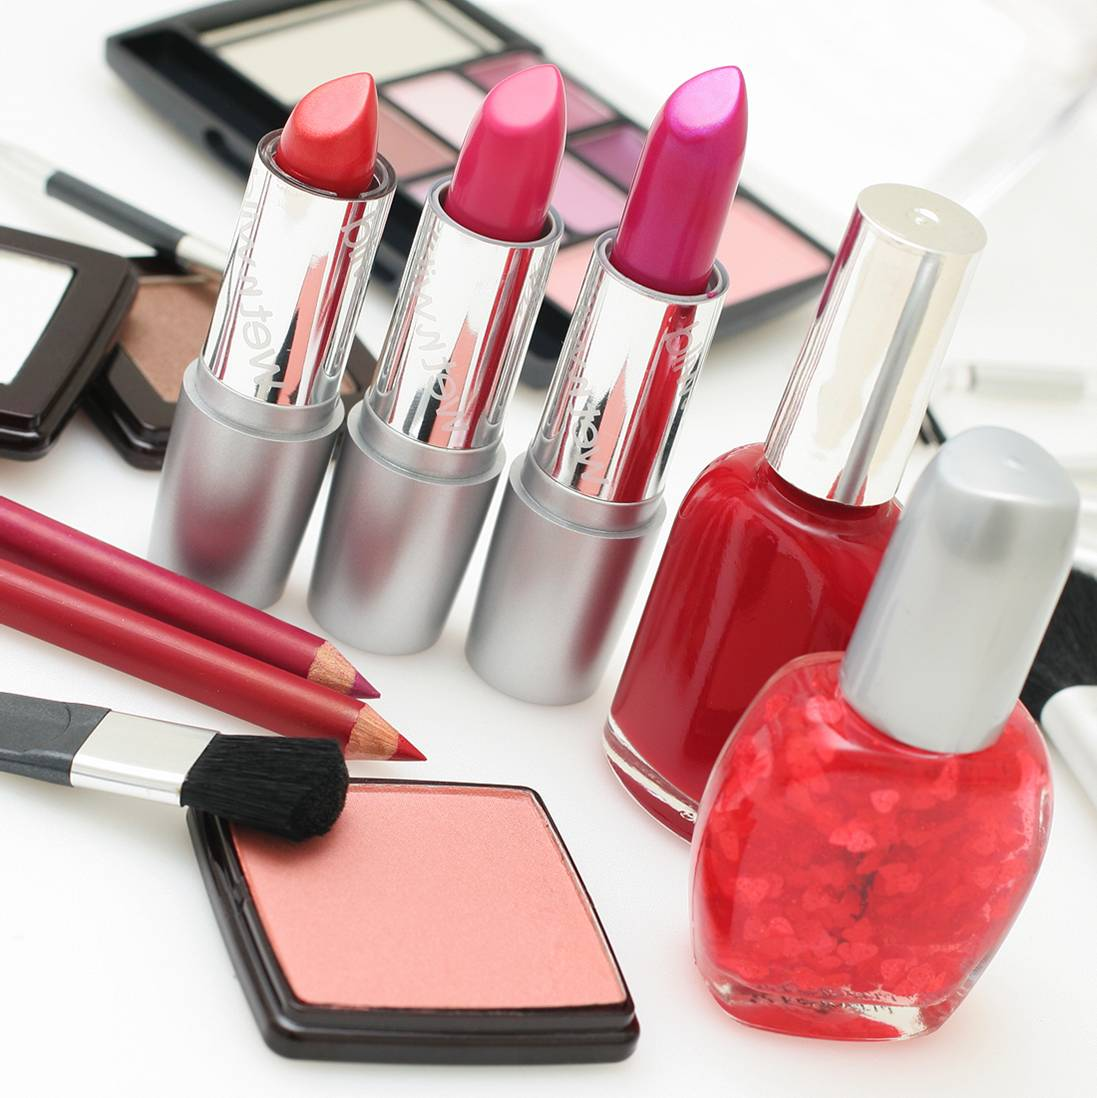 cosmetics online in Spain